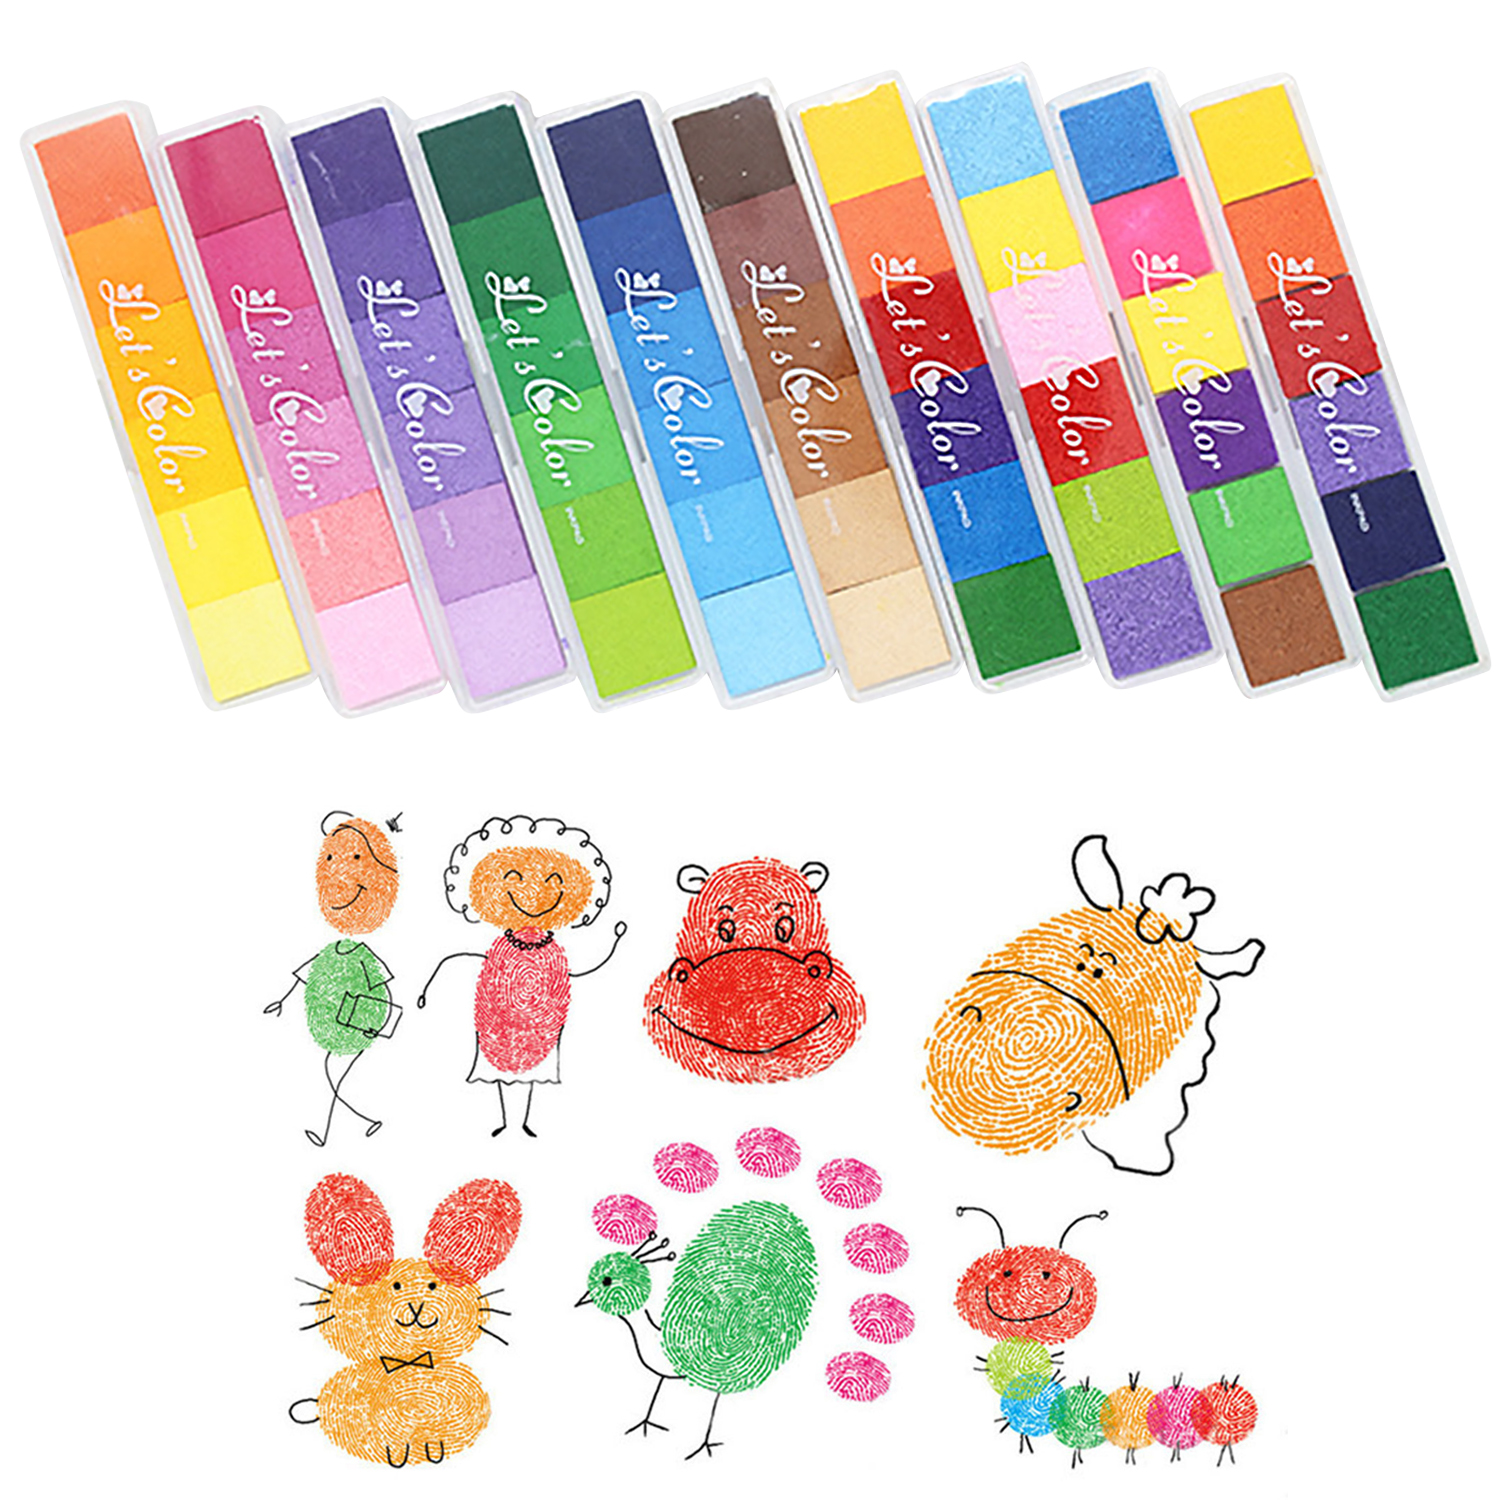 6PCS Gradient Colors Washable Painting Graffiti Inkpads + 4PCS Colorful Ink Pads Cushion Stamp For Children DIY Finger Printing